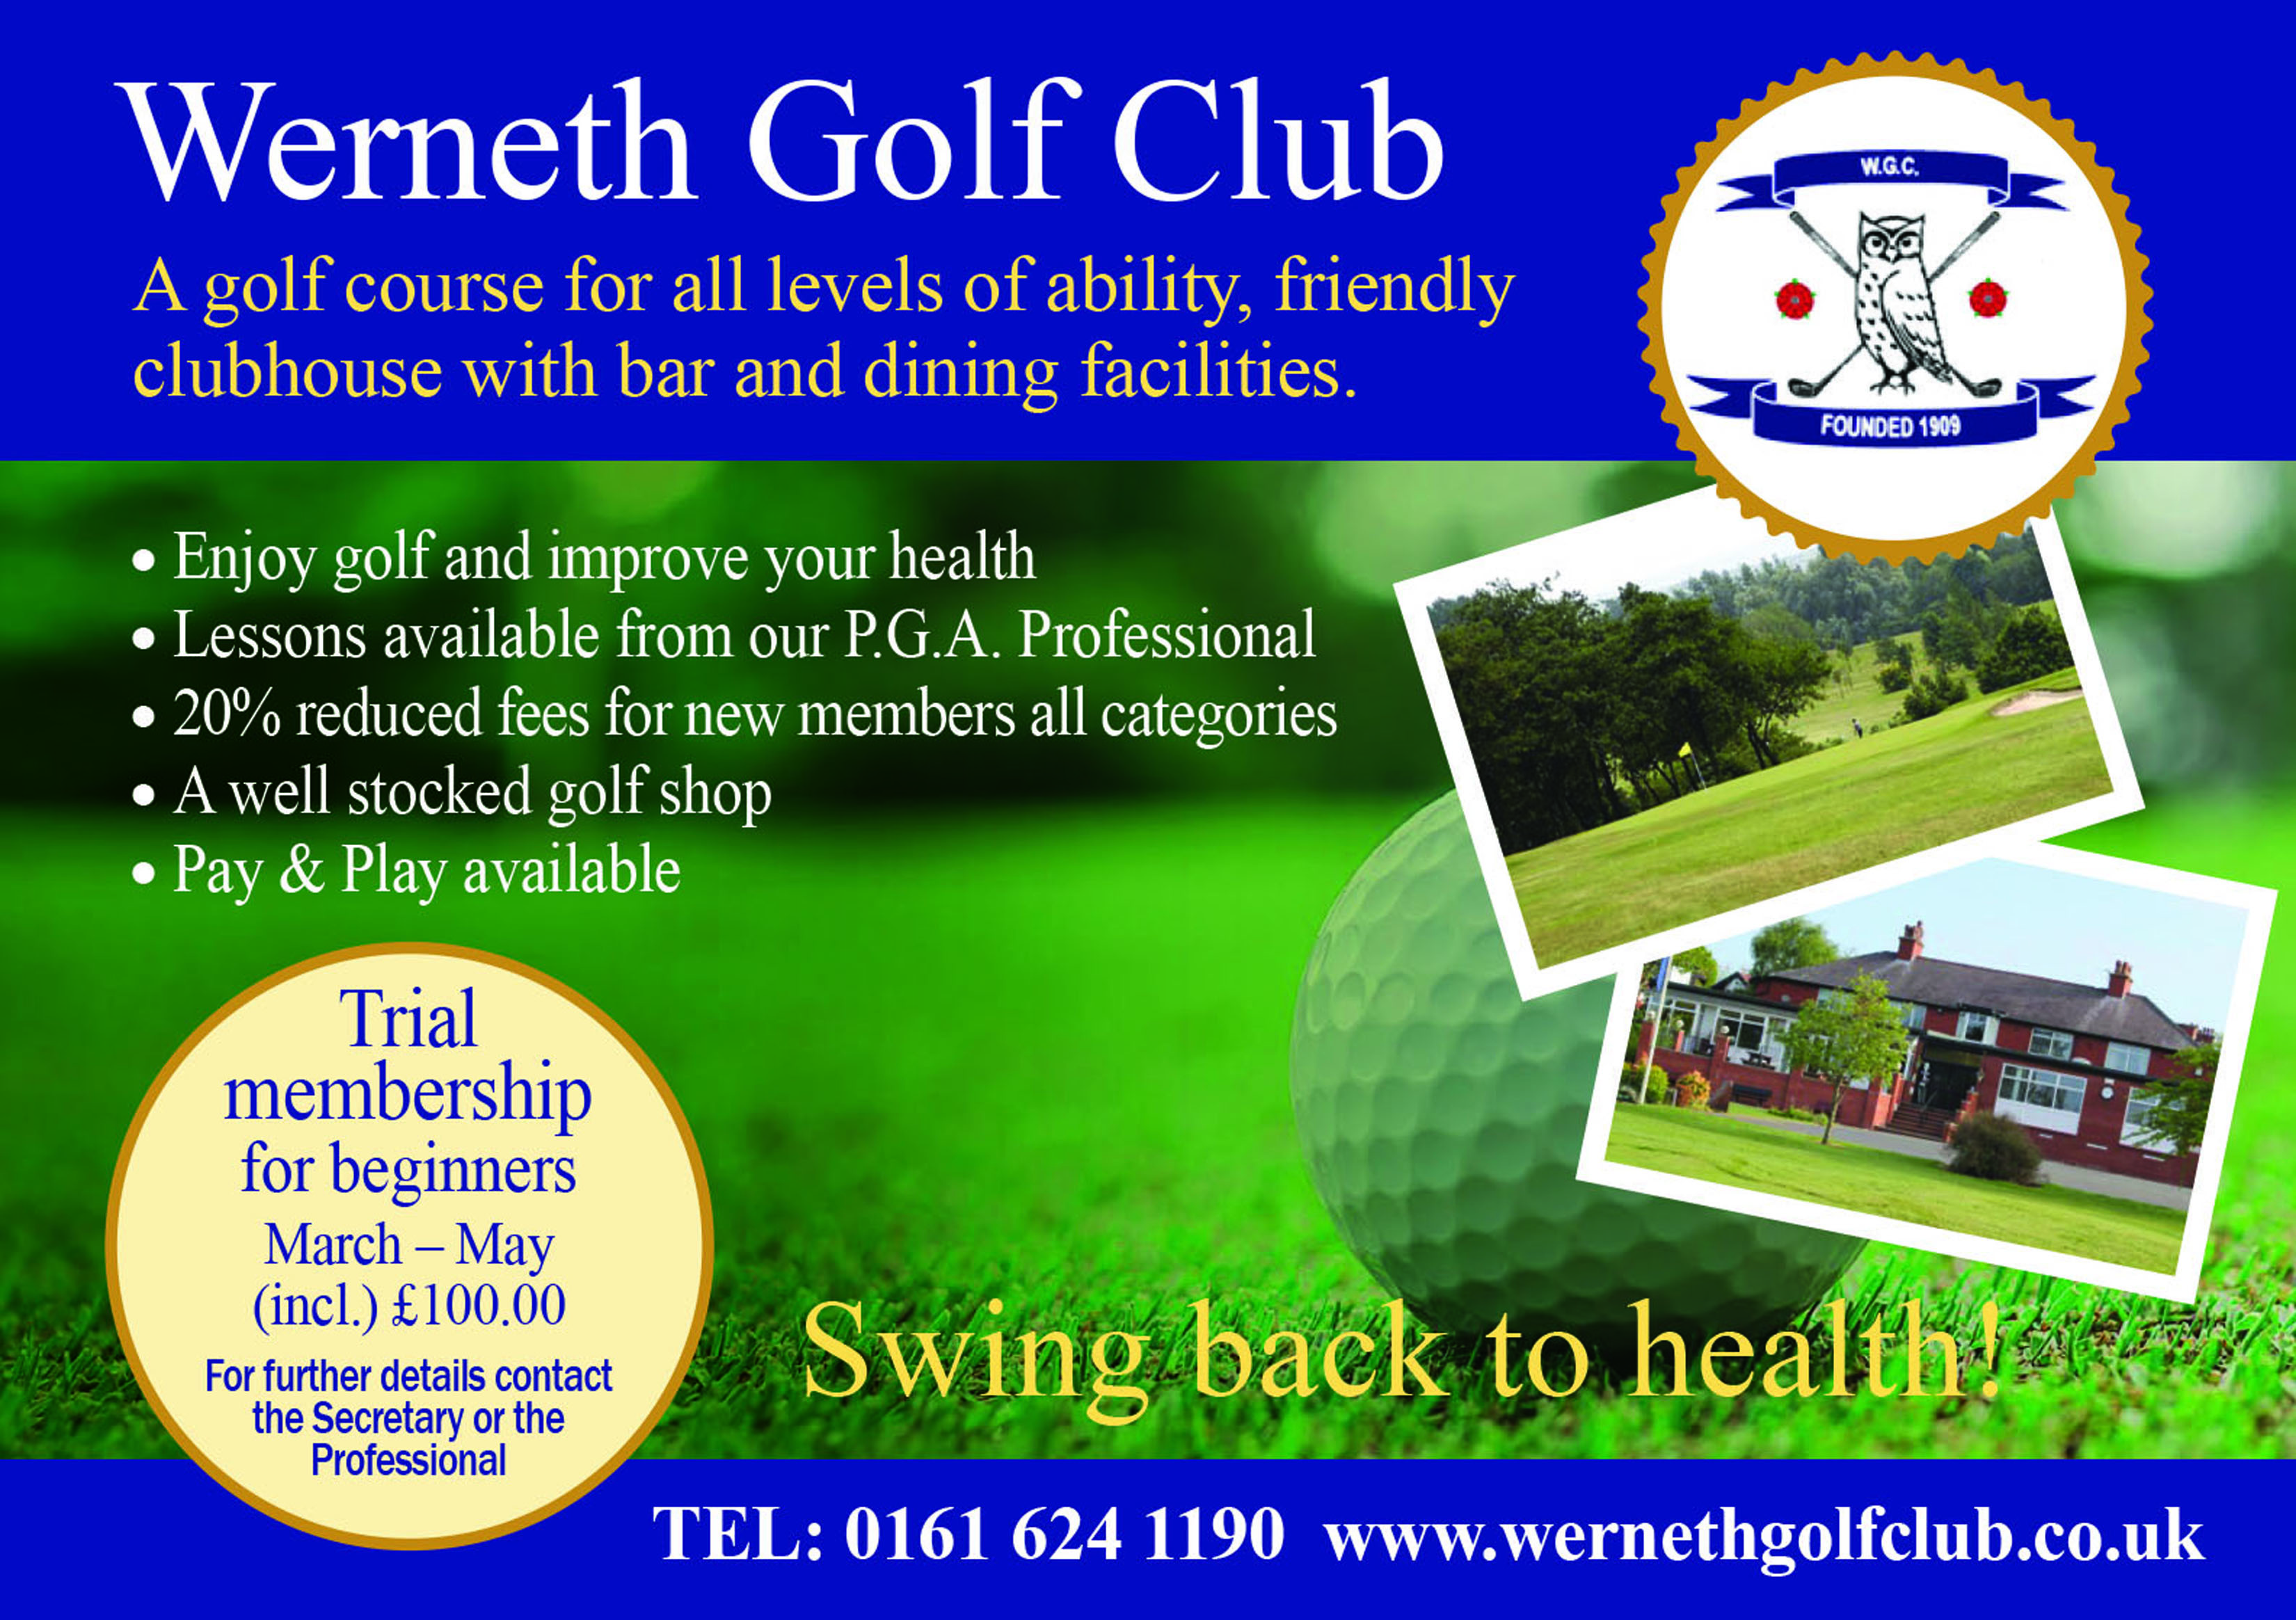 Werneth Golf Club Advert